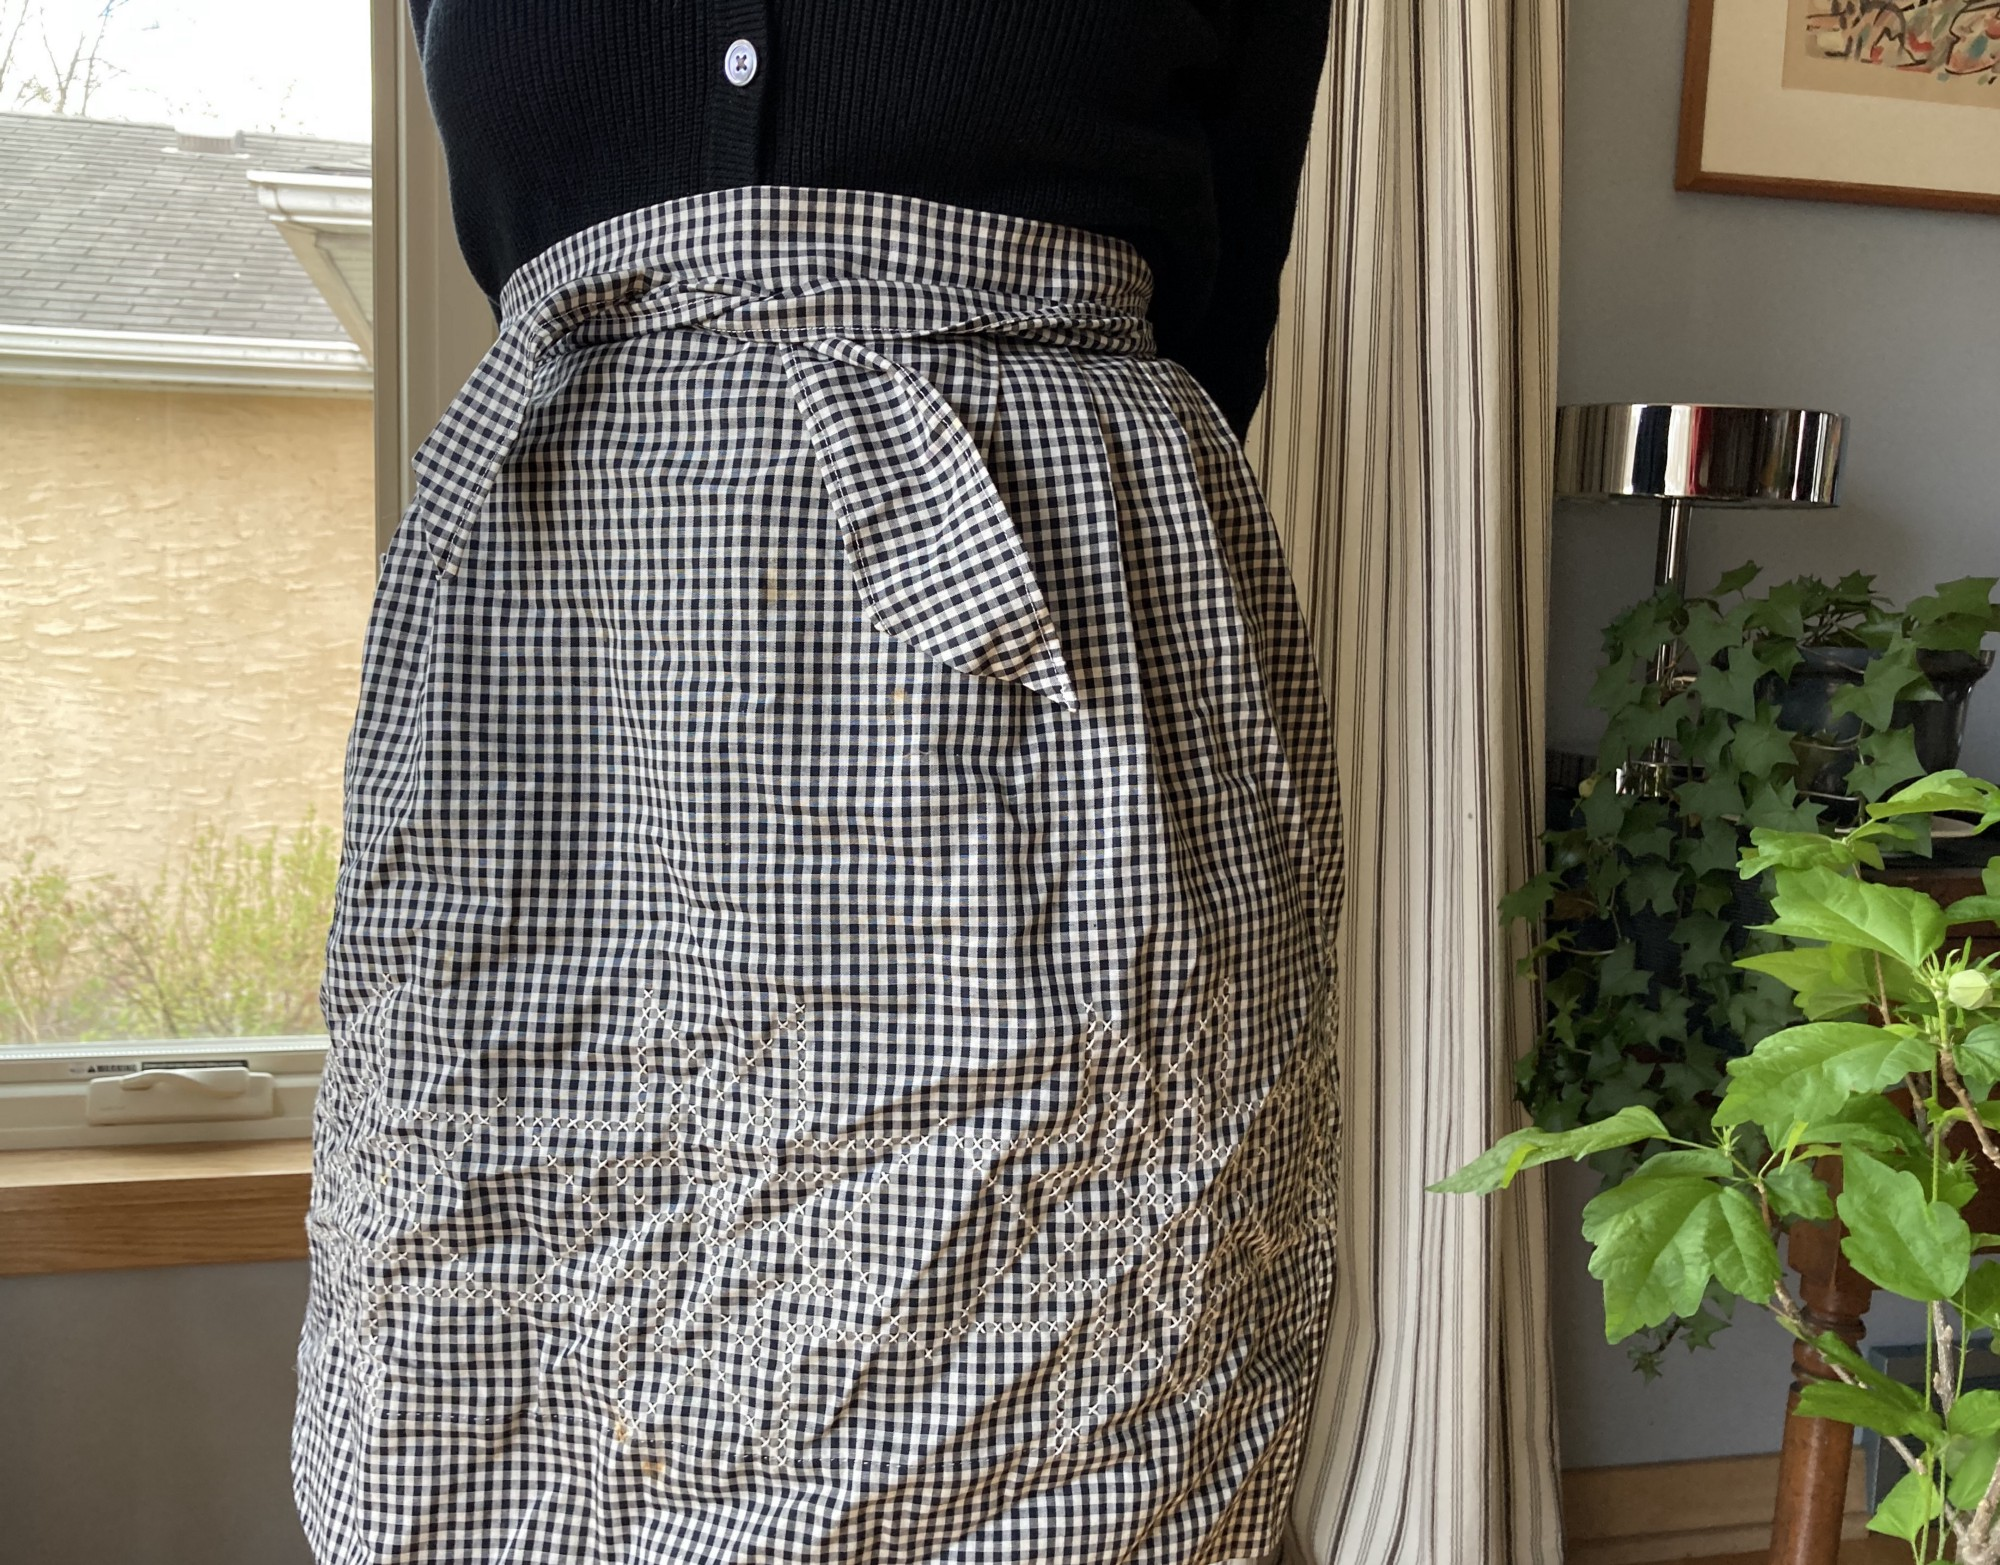 B & W gingham apron with snowflake embroidery